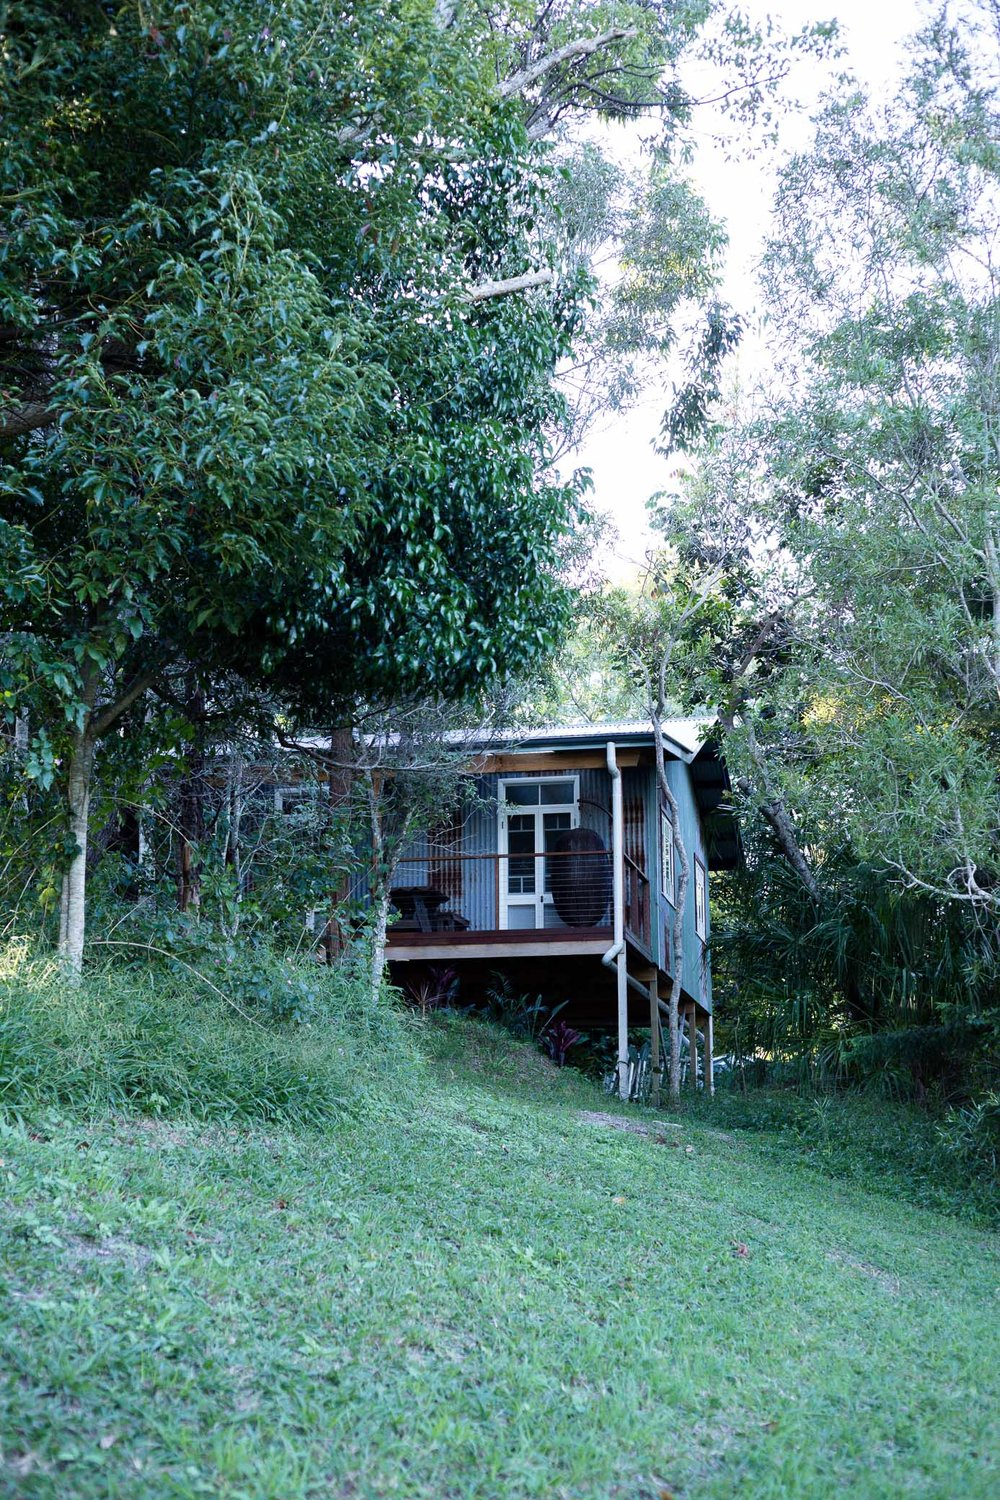 Then let's rest the night in a sweet country cabin -